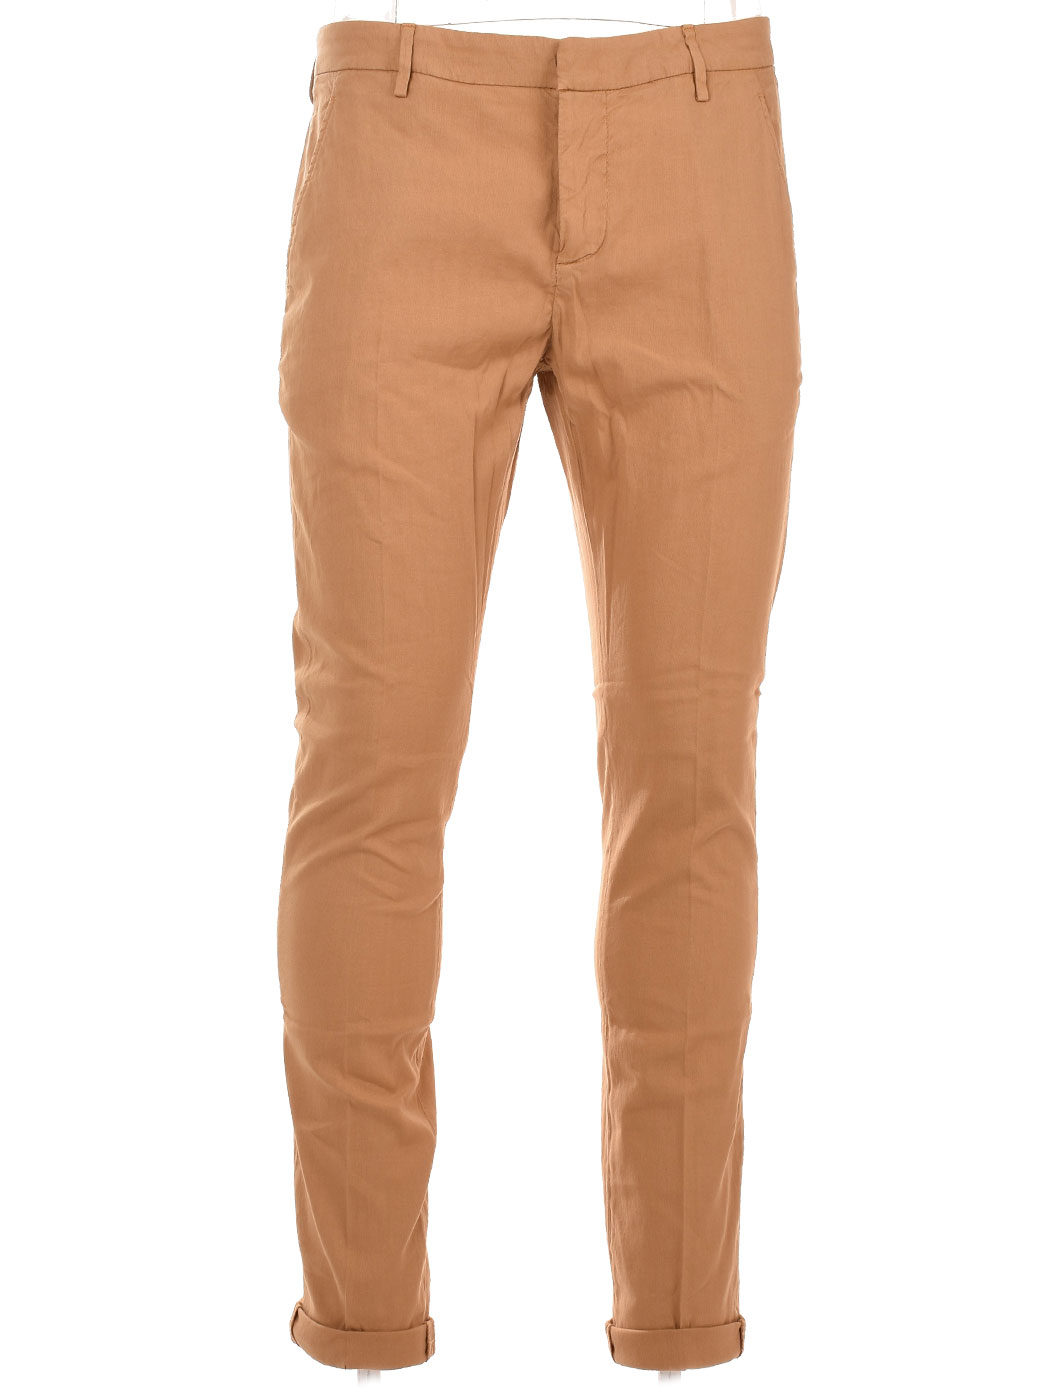 DONDUP UP235 DU035 PANTALONI